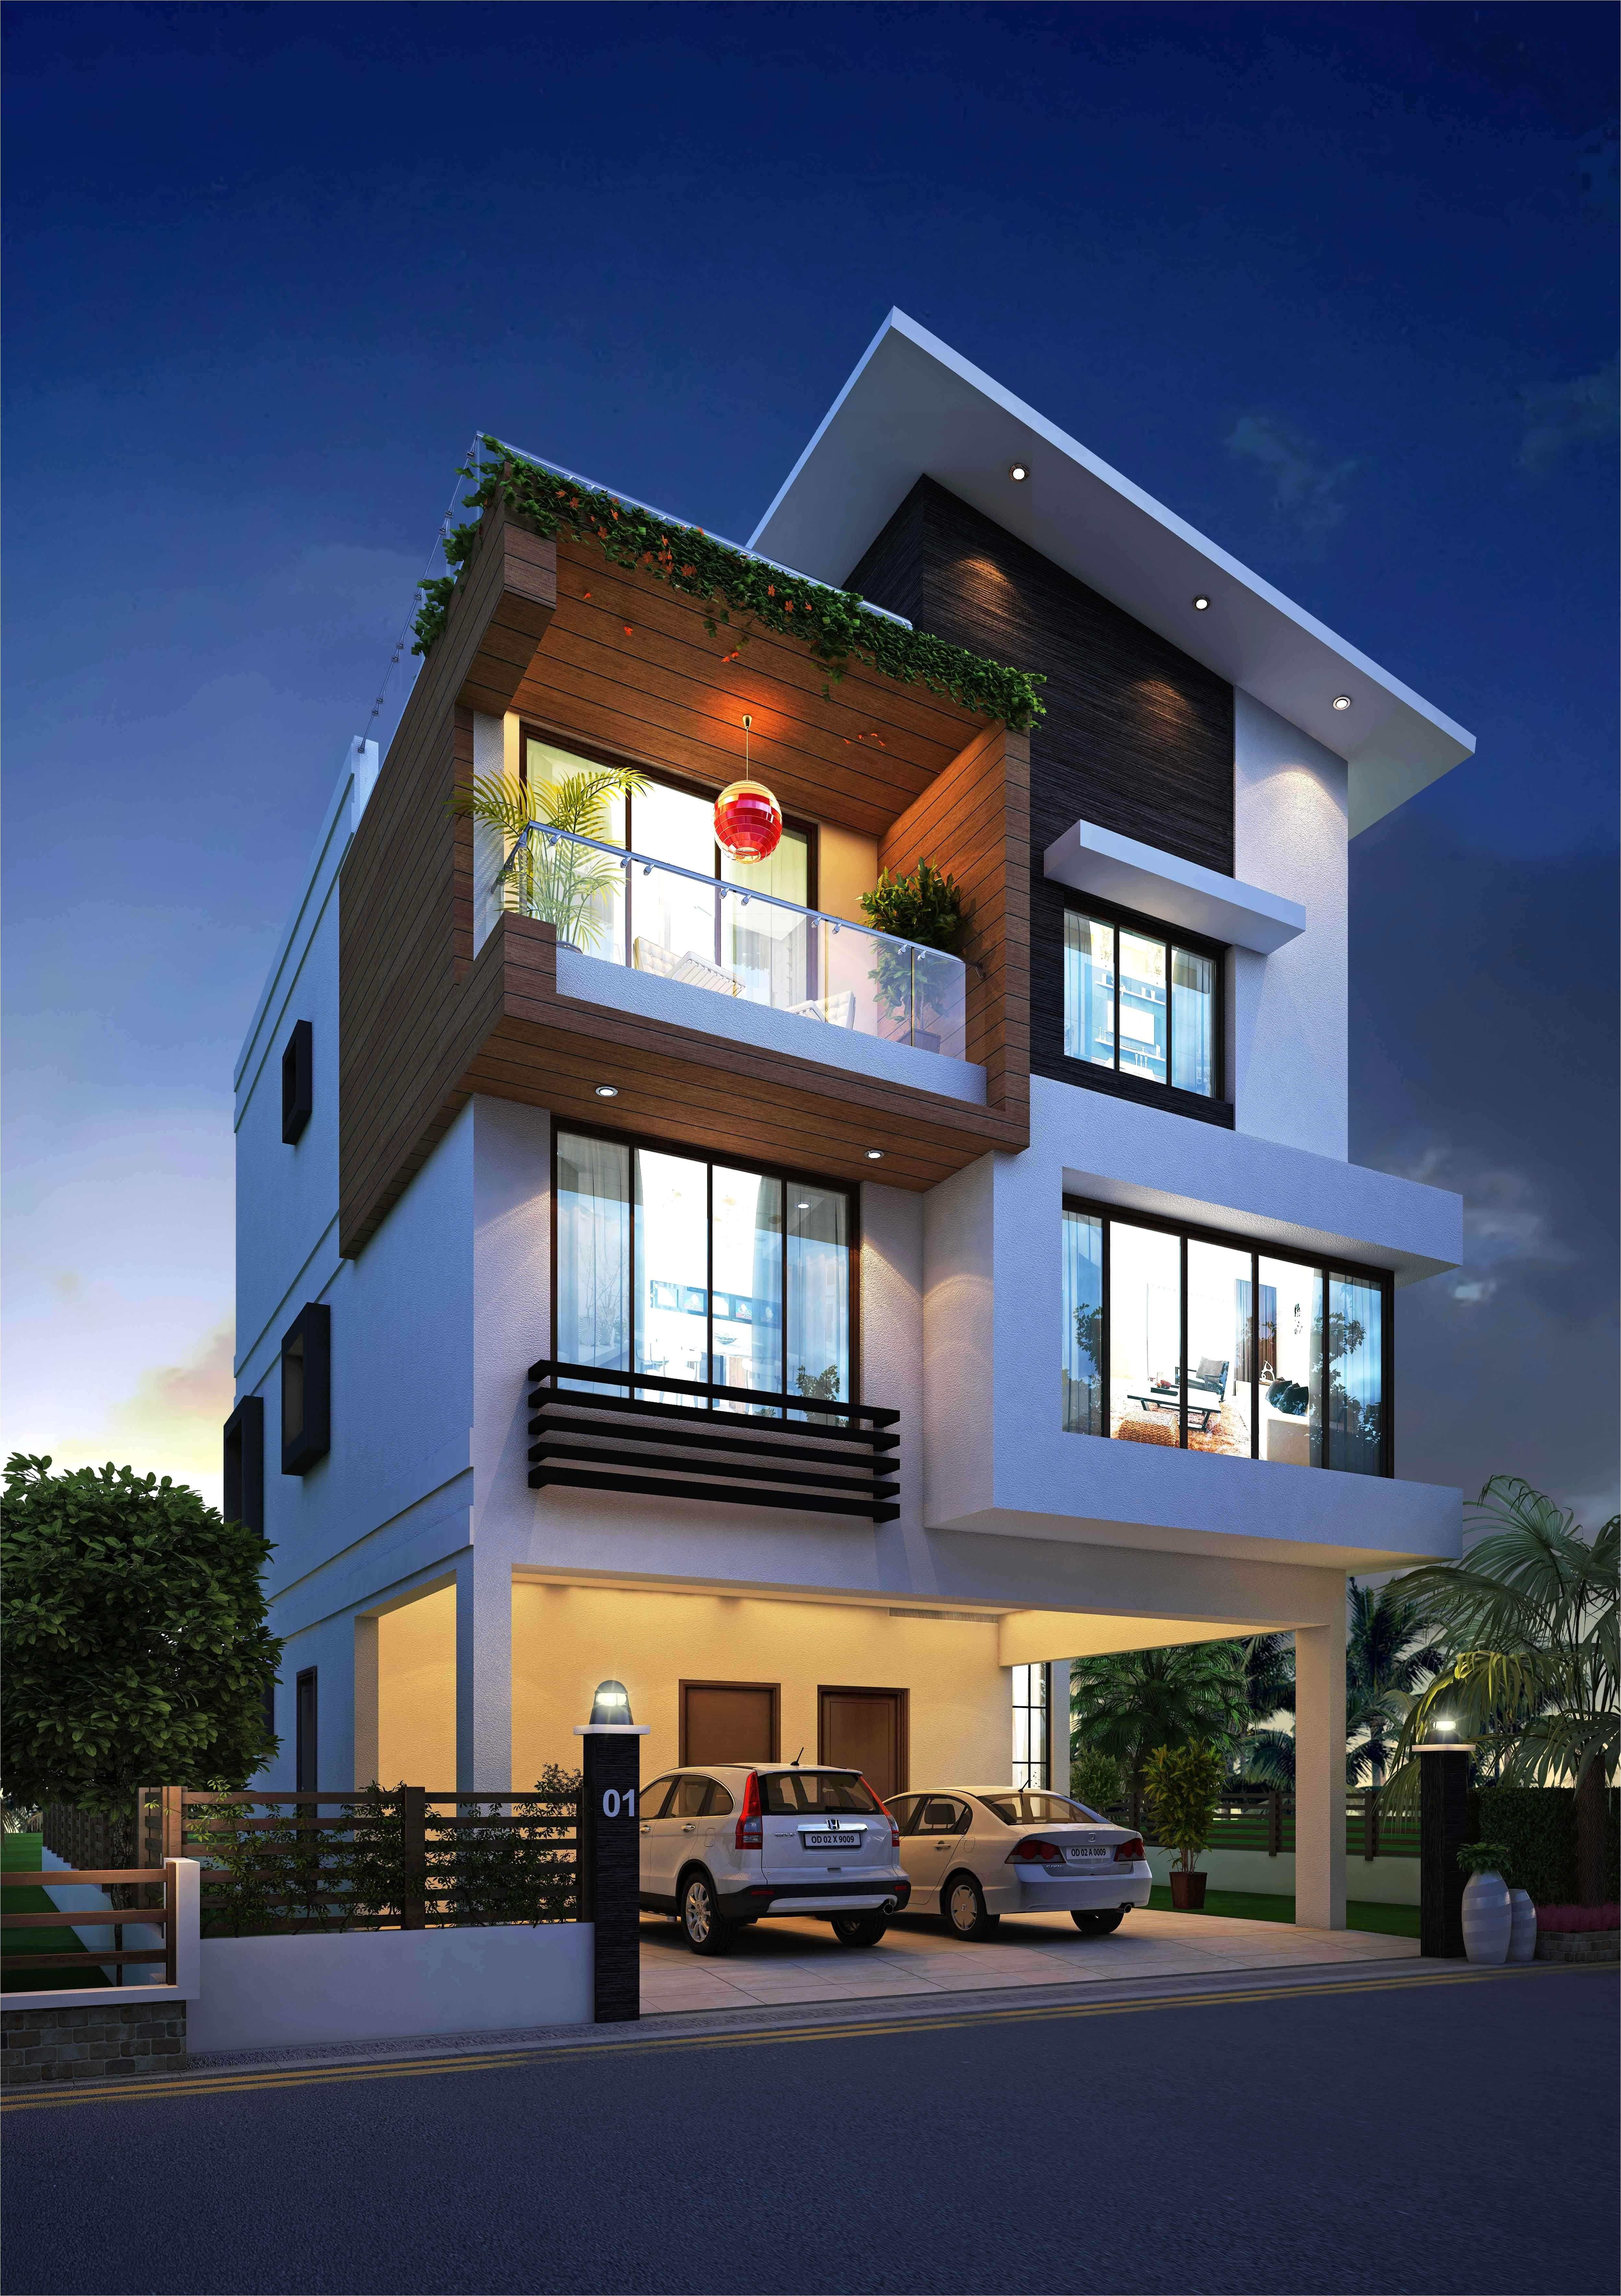 Build A House for 100k Inspirational House Plans Under 100k to Build Check More at S